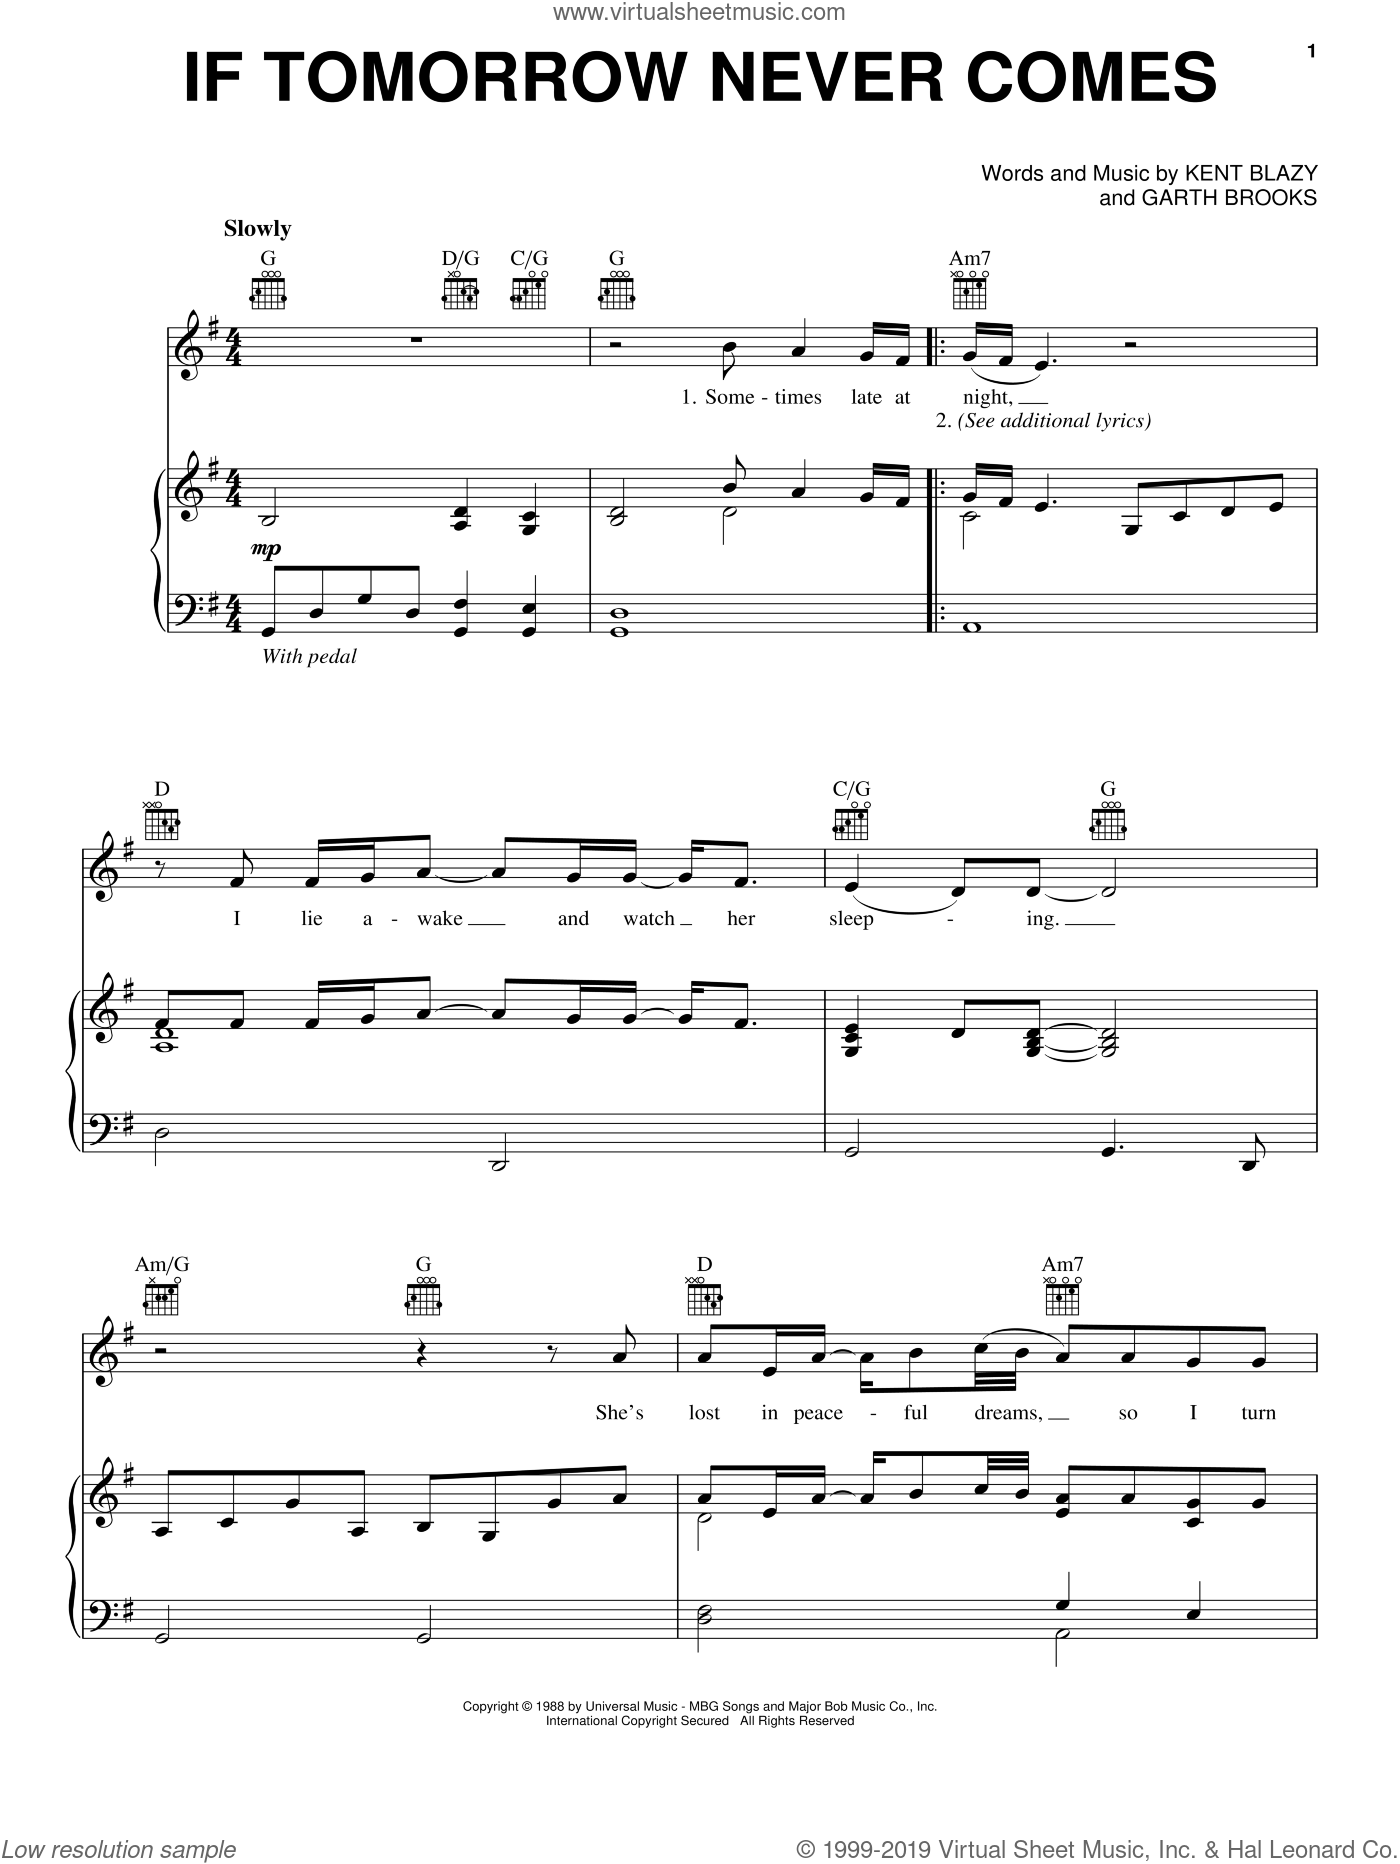 If Tomorrow Never Comes sheet music for voice, piano or guitar by Garth Brooks and Kent Blazy, intermediate. Score Image Preview.